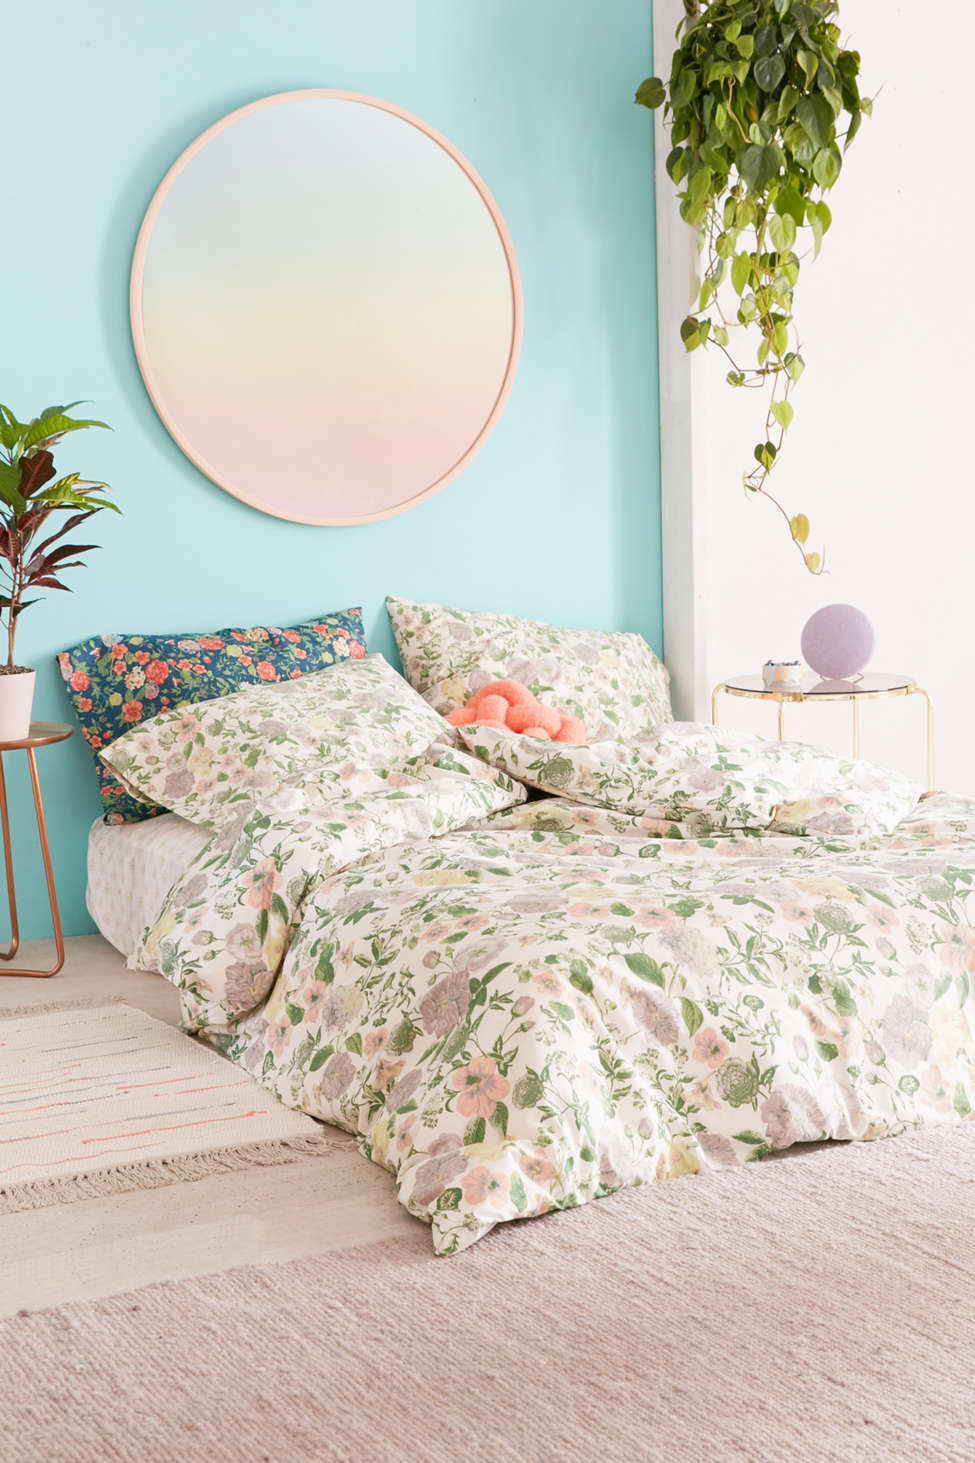 Slide View: 2: Amara Floral Duvet Cover